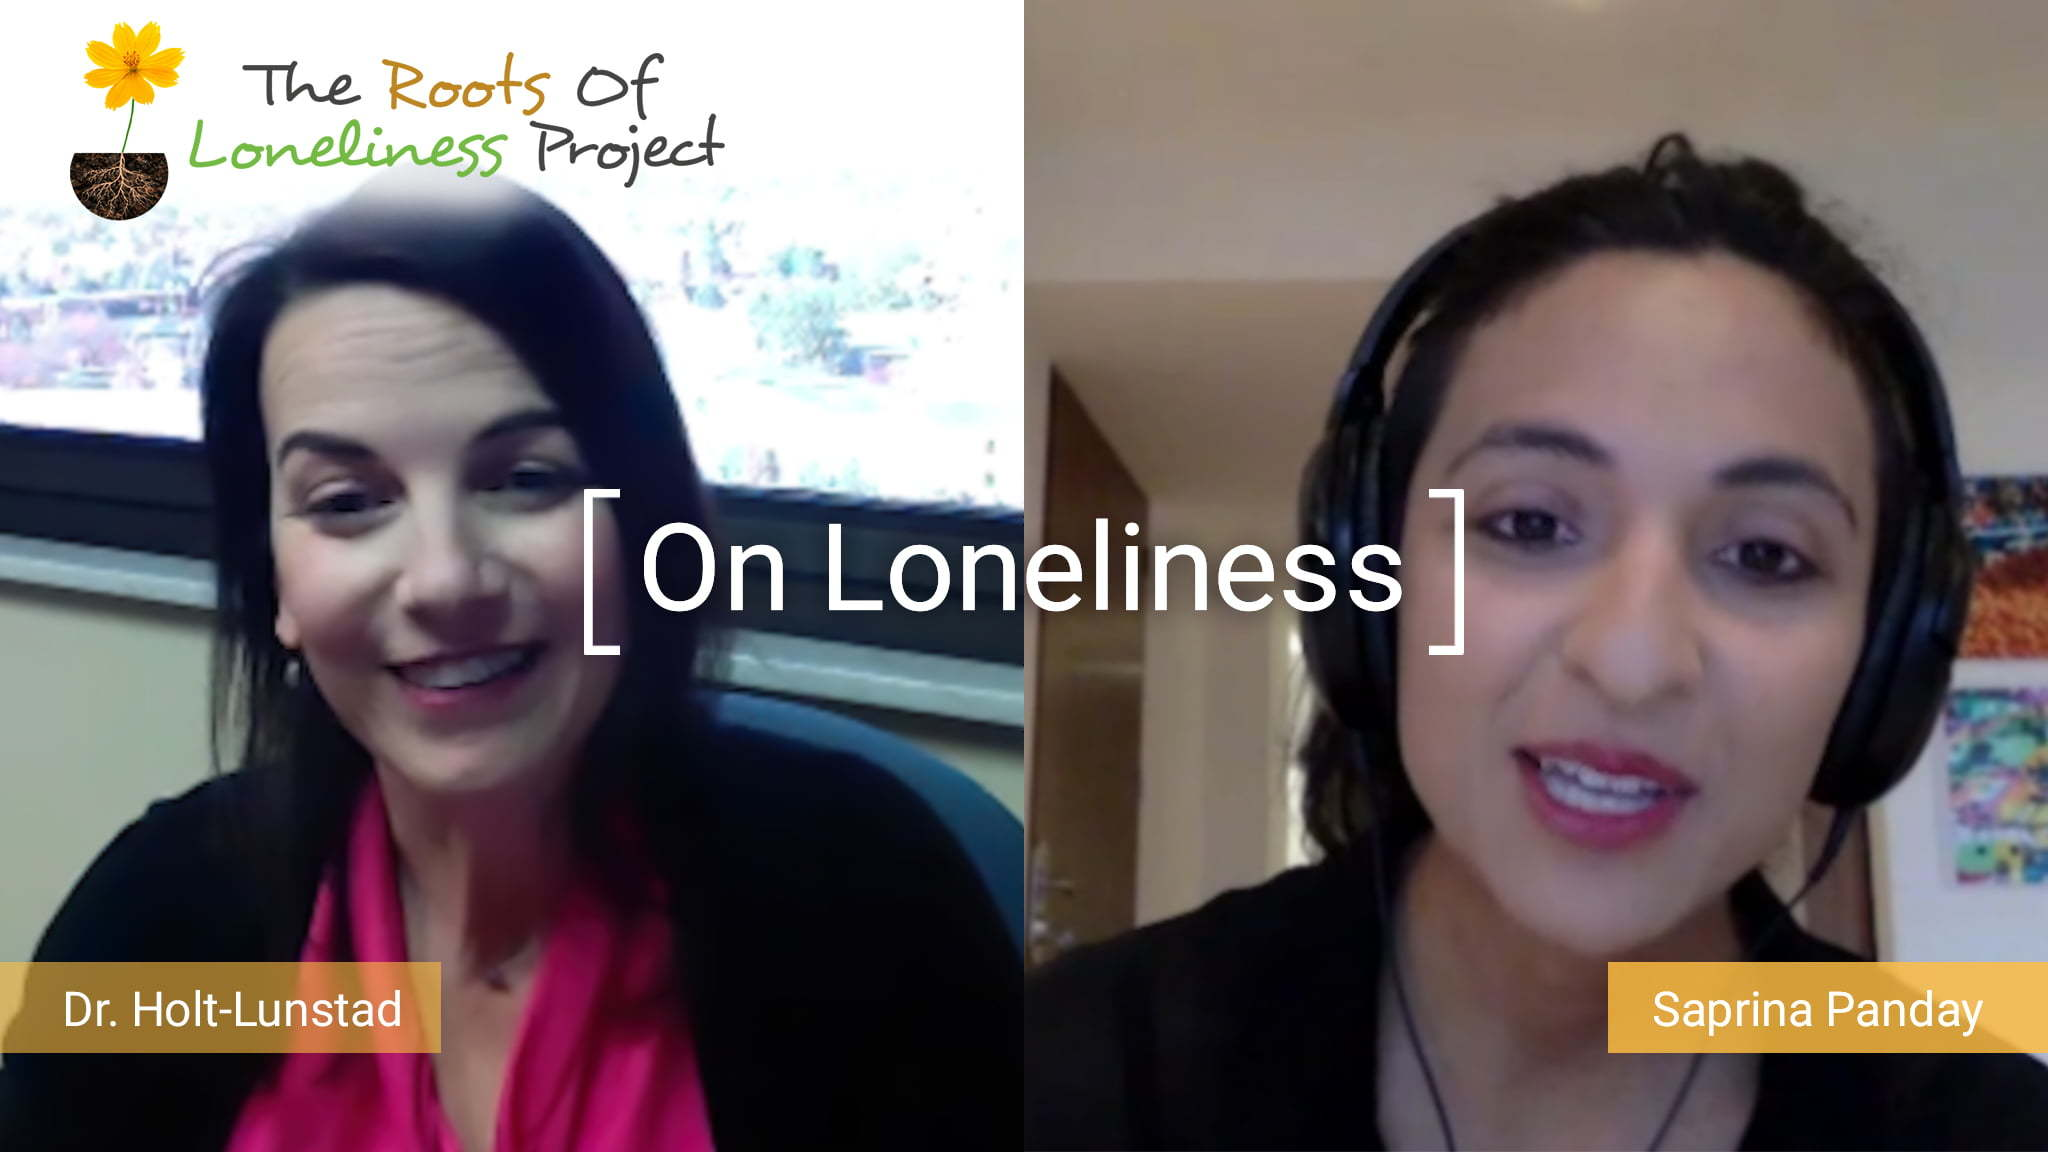 Screenshot Of A Video Interview With Dr. Holt-Lunstad And Saprina Panday For Women's Health Interactive Discussing The Topic Of Loneliness